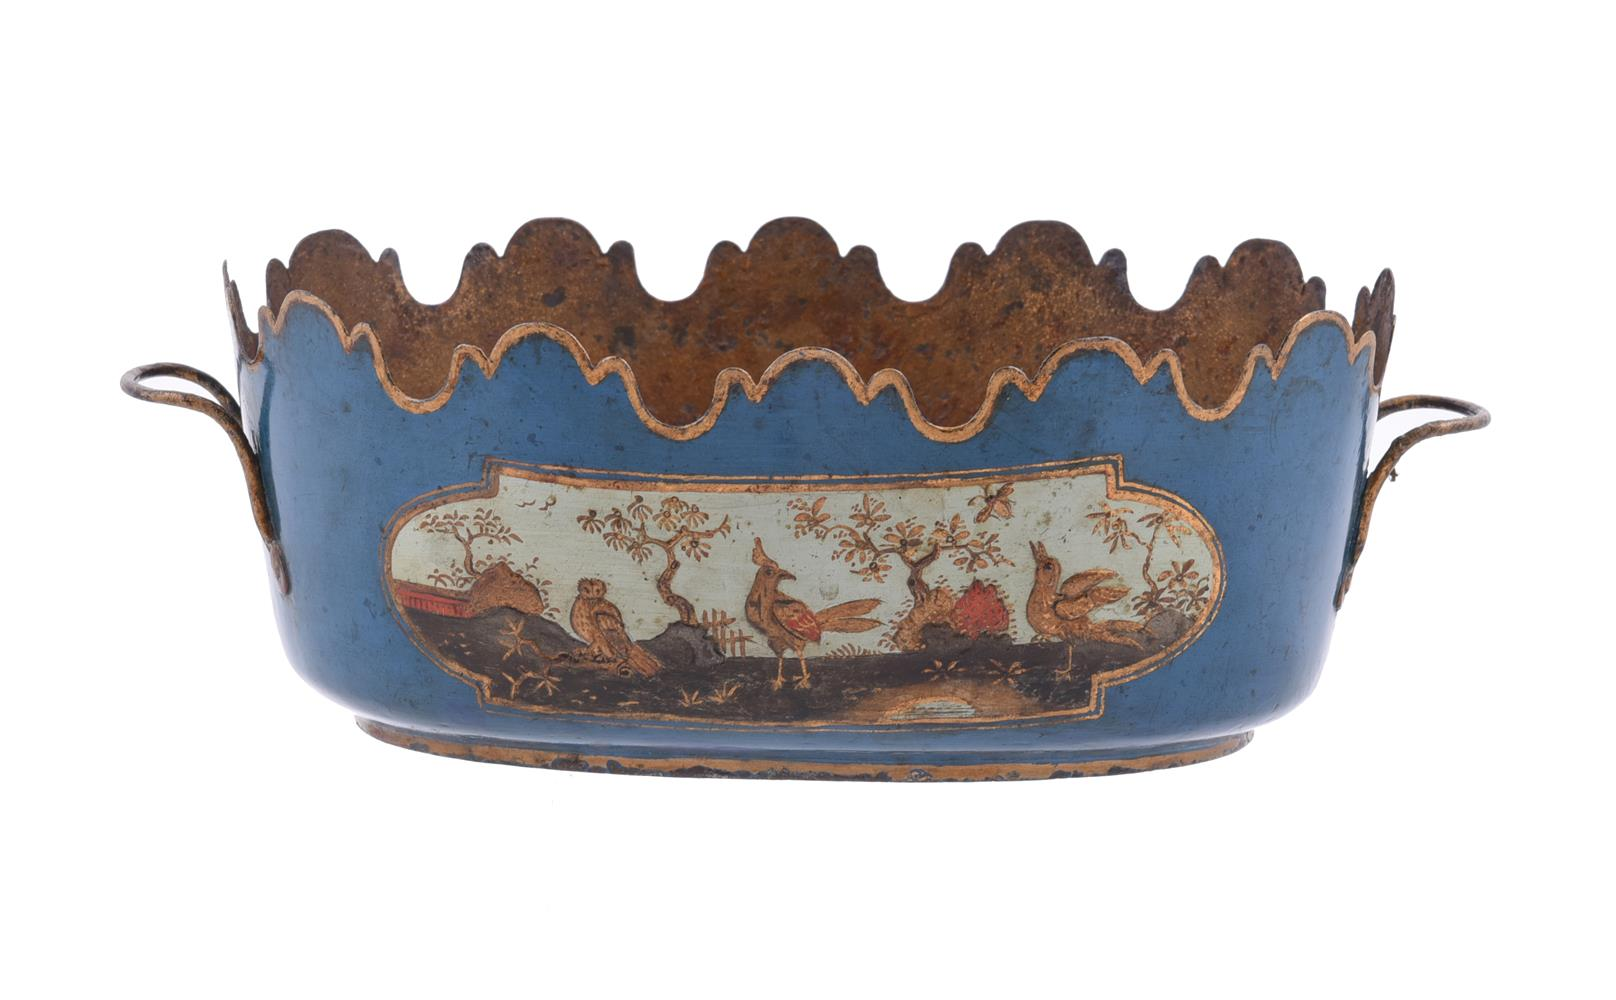 A PAIR OF FRENCH CHINOISERIE TÔLE PEINTE SEAUX À VERRE OR GLASS COOLERS, SECOND HALF 18TH CENTURY - Image 5 of 5